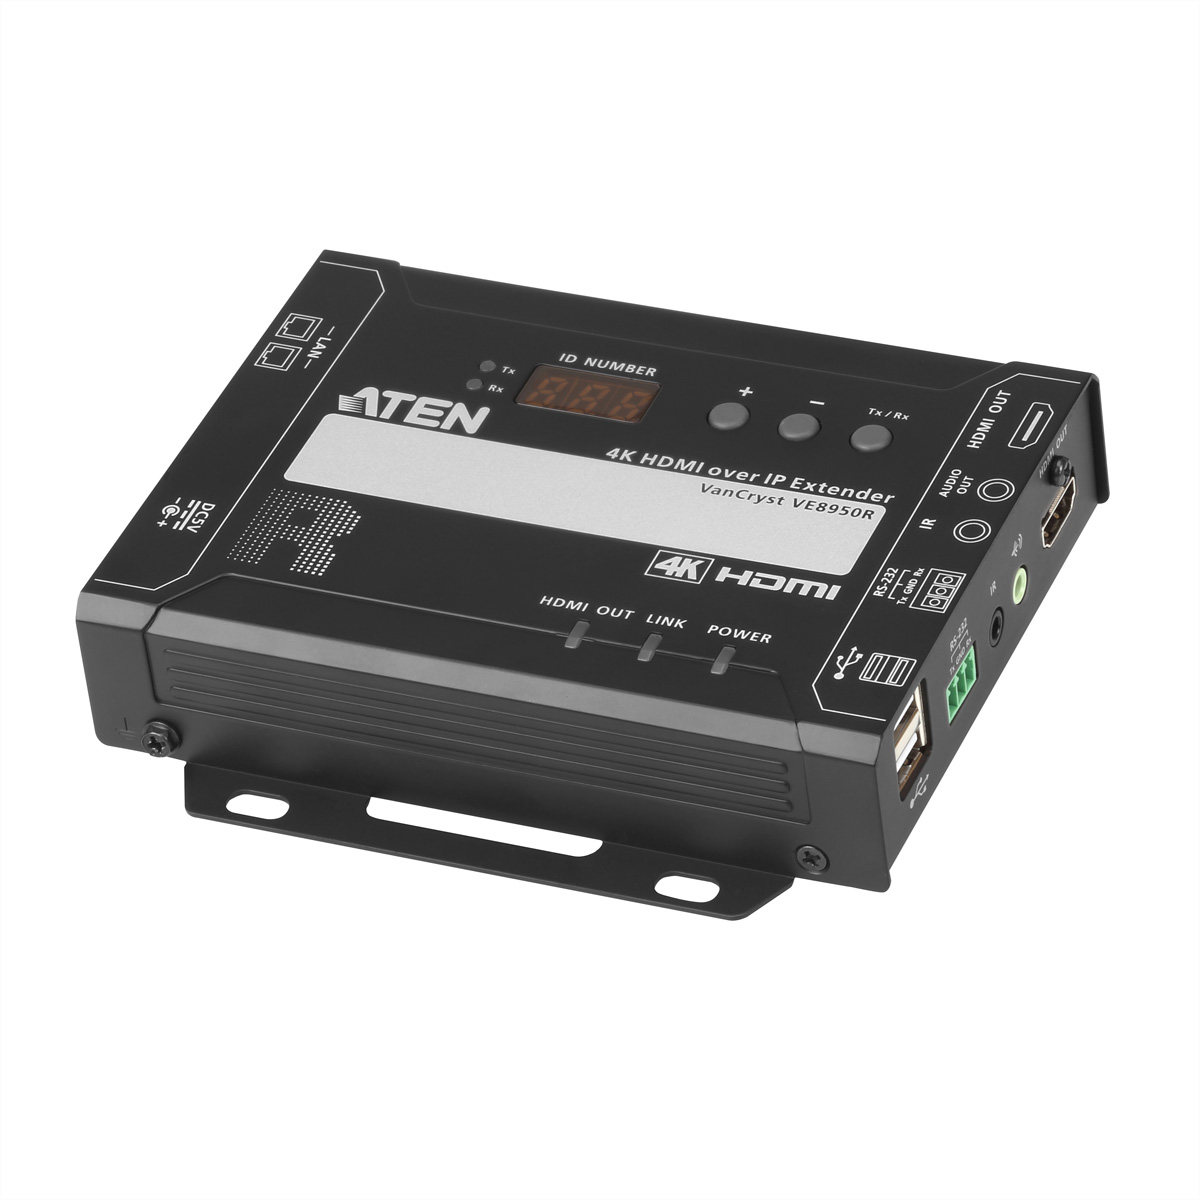 ATEN VE8950R 4K HDMI Over IP Receiver